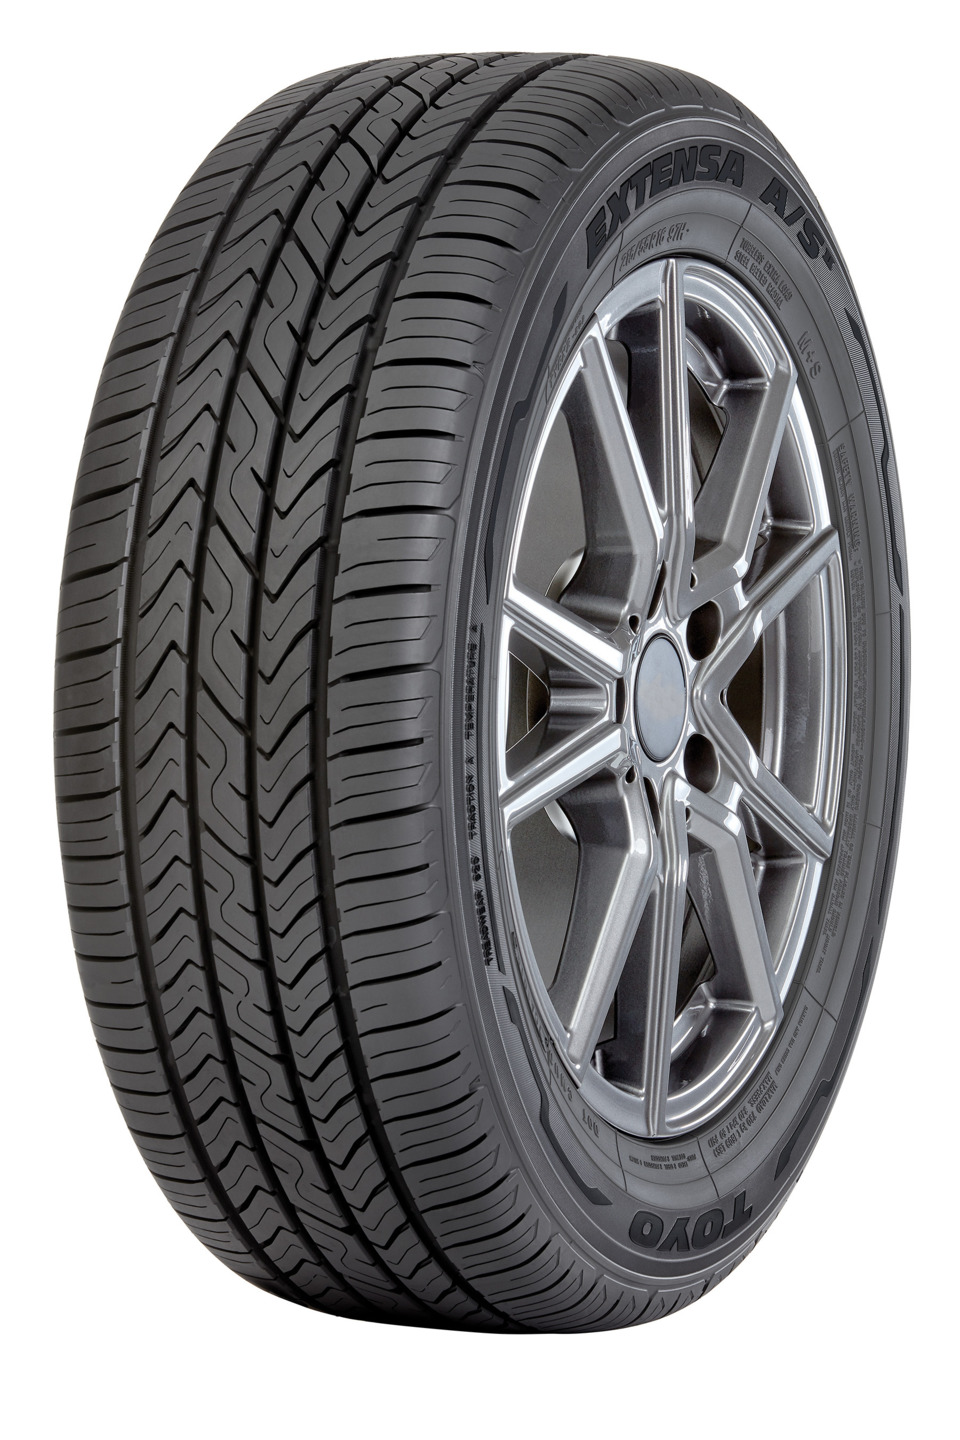 Toyo Tires introduces Extensa A/S II line